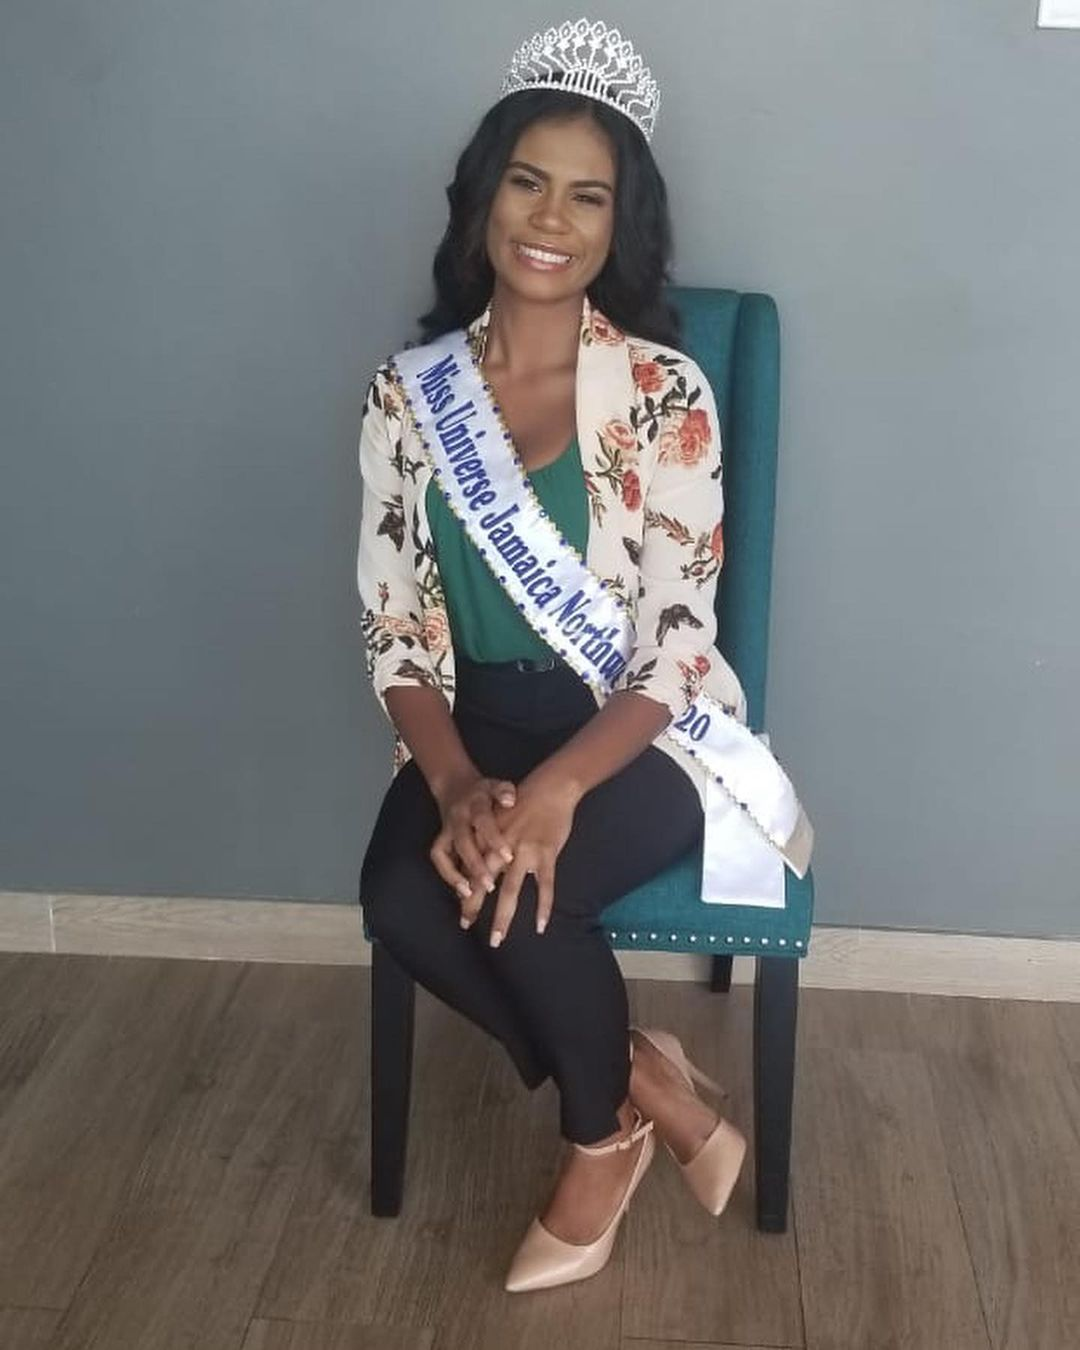 candidatas a miss universe jamaica 2020. top 10: pag 2. final: 12 dec. Atarian-122556760-827734034659346-7560665154332475417-n